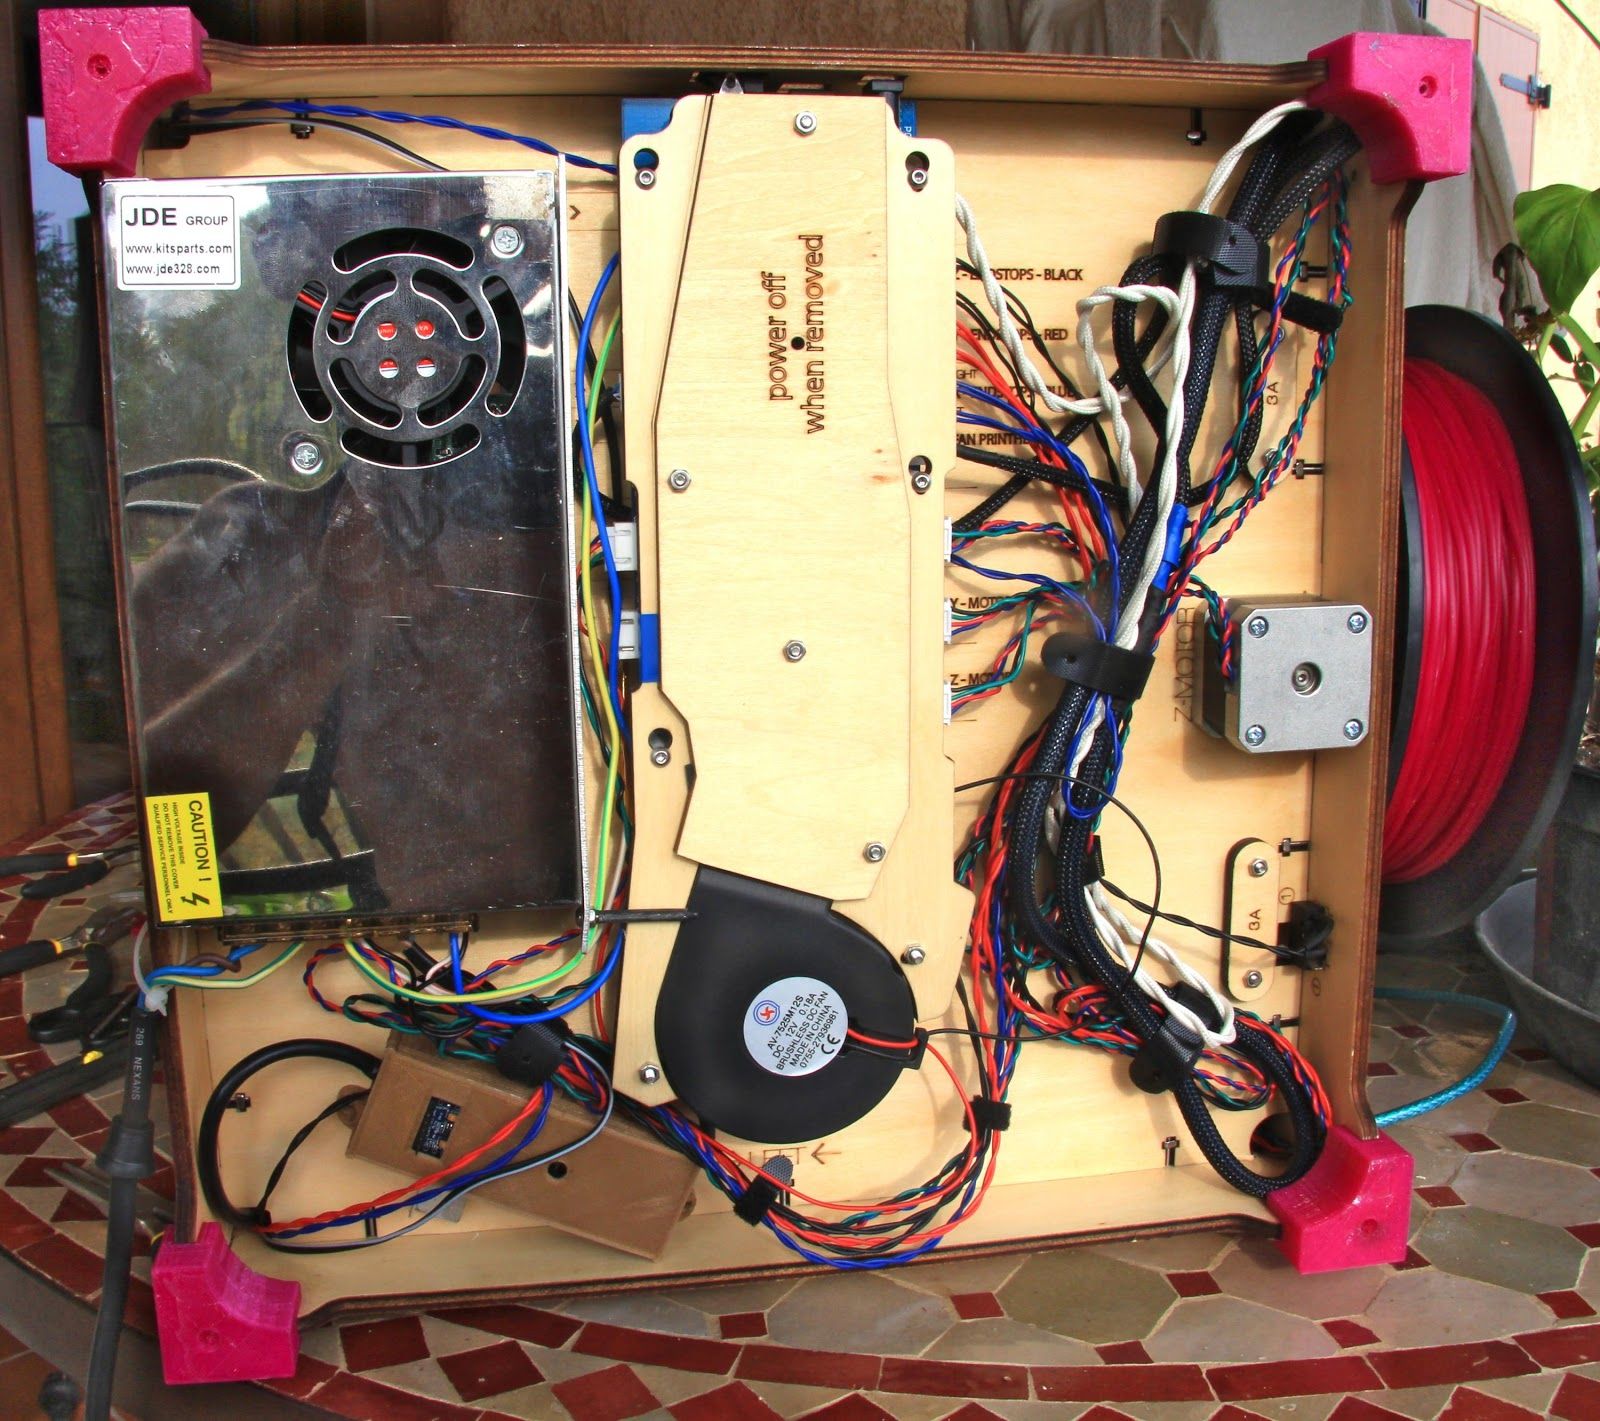 3d Printer Improvements Homemade Heated Bed Reprap Limit Switch Wiring Diagram One Single Power Supply Located Under The